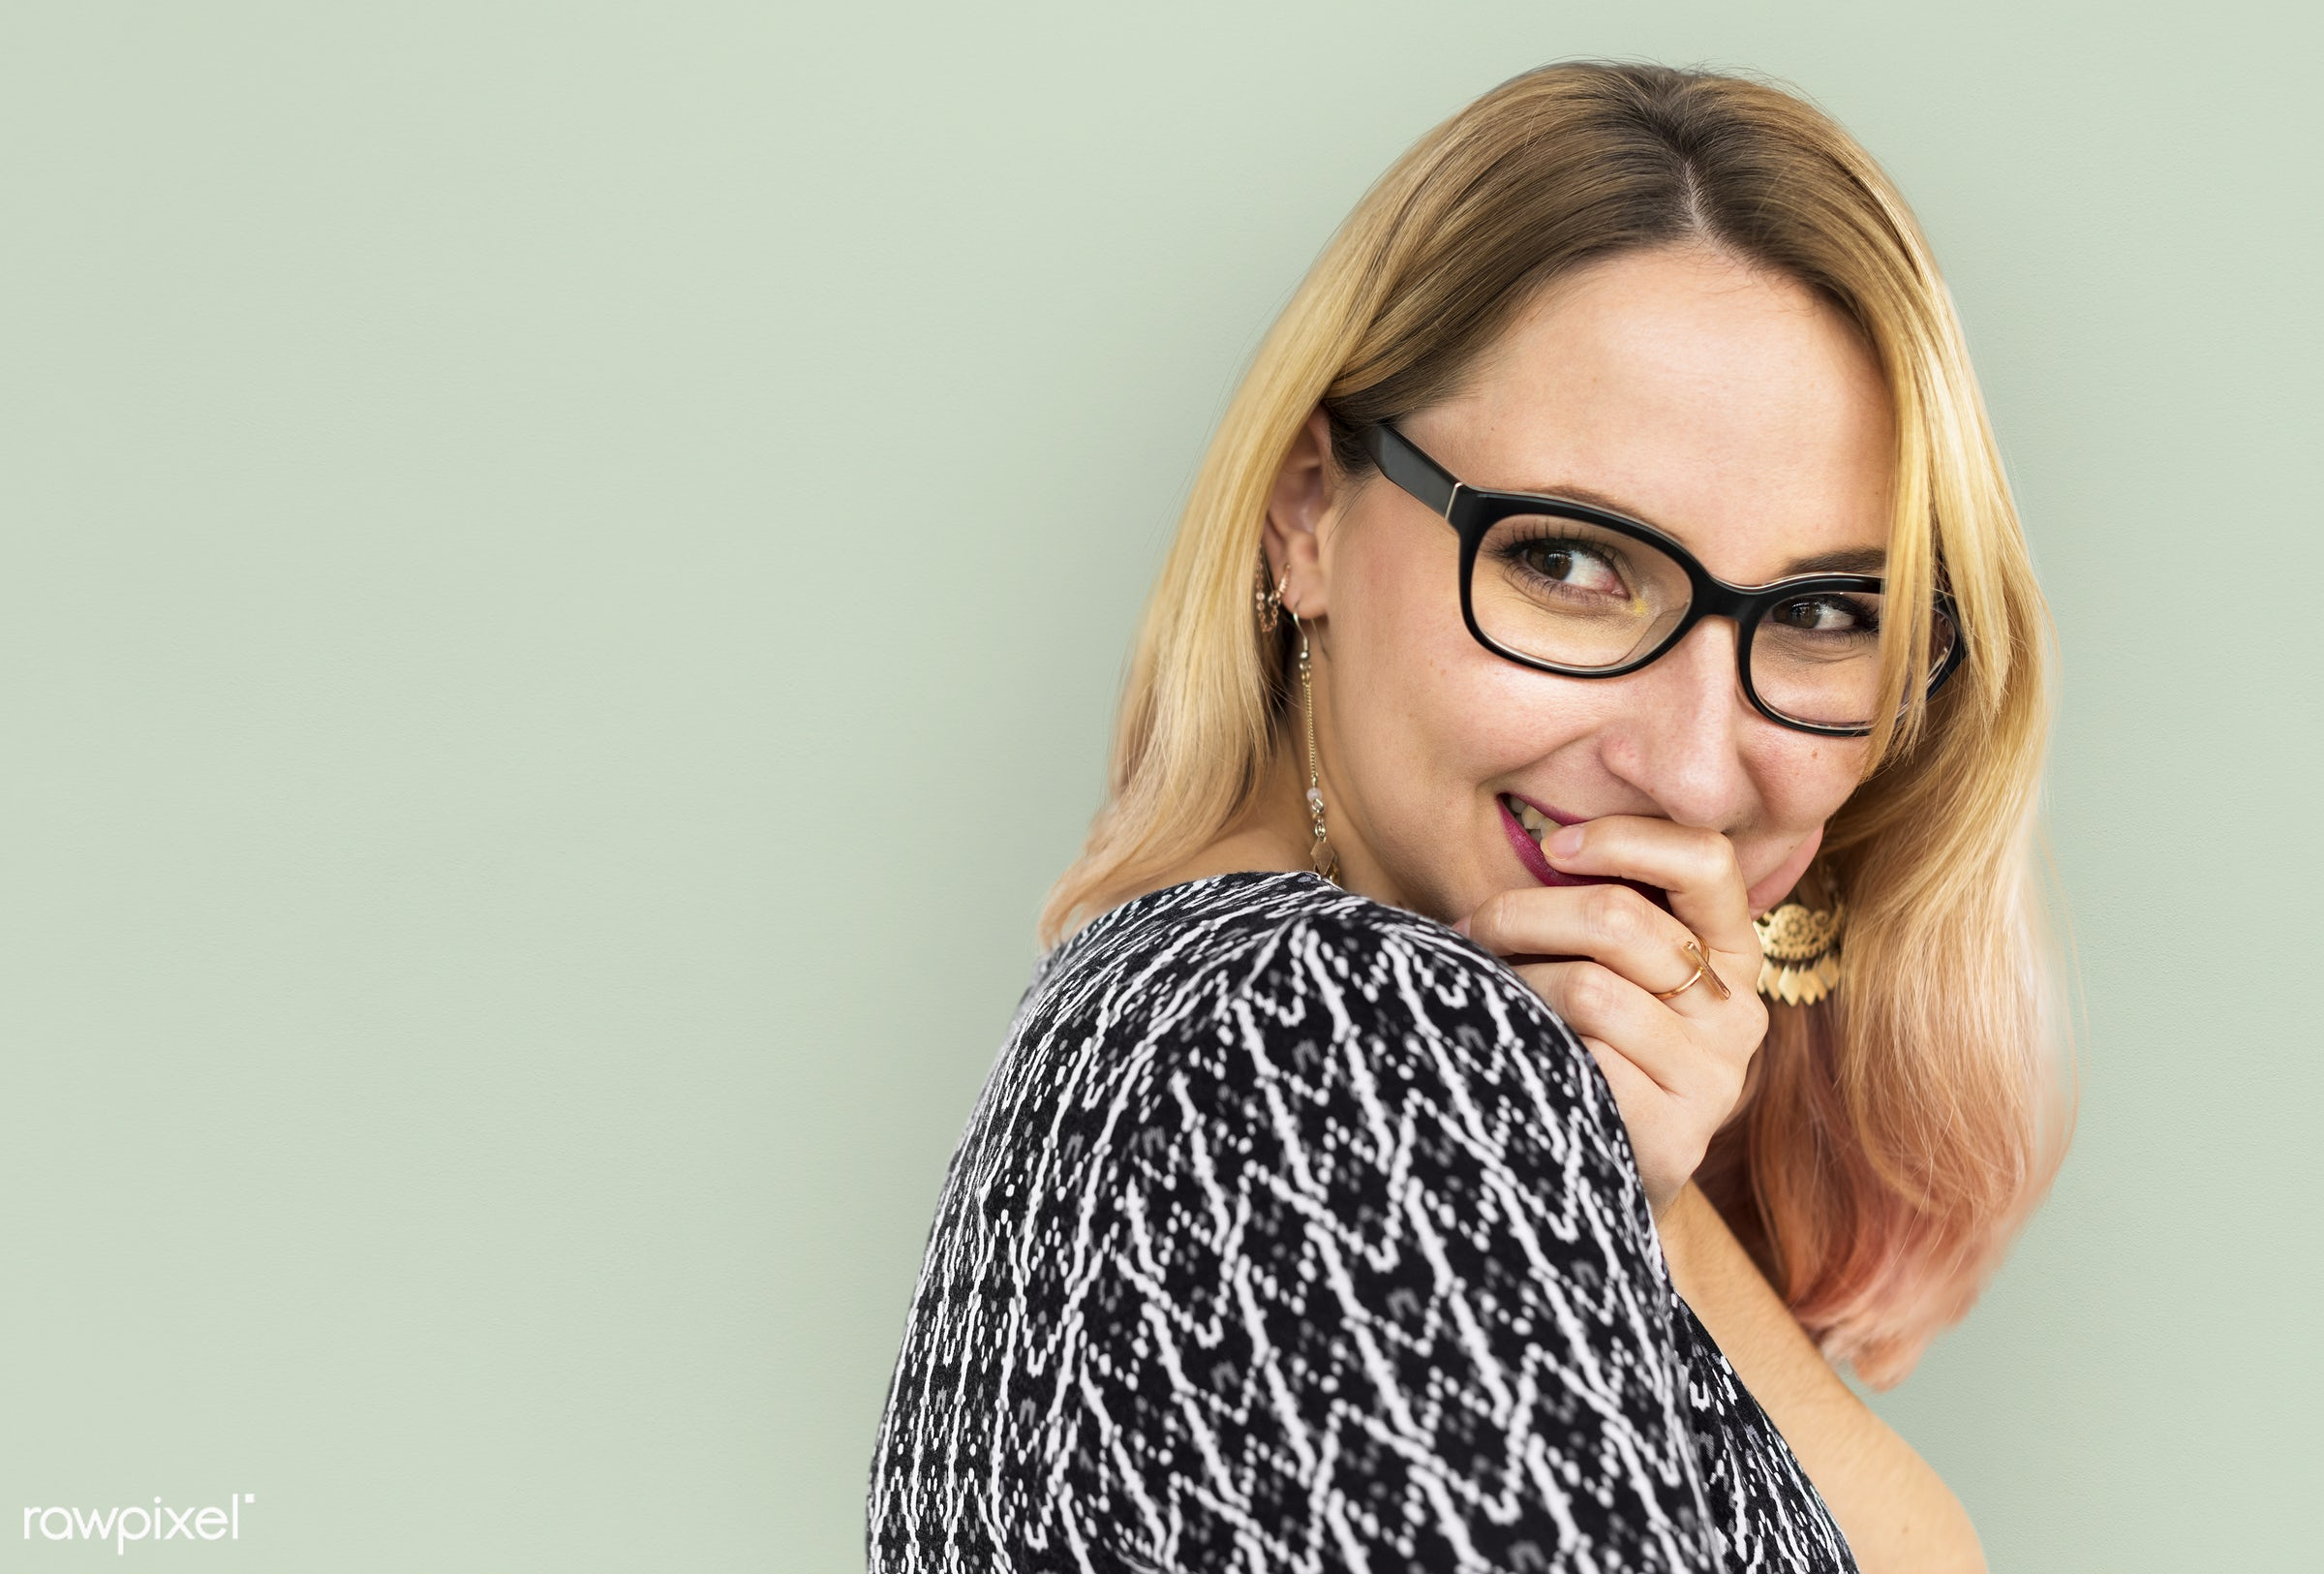 studio, expression, pastel, face, person, glasses, one, blond, cute, pretty, people, modern, laughing, girl, attractive,...